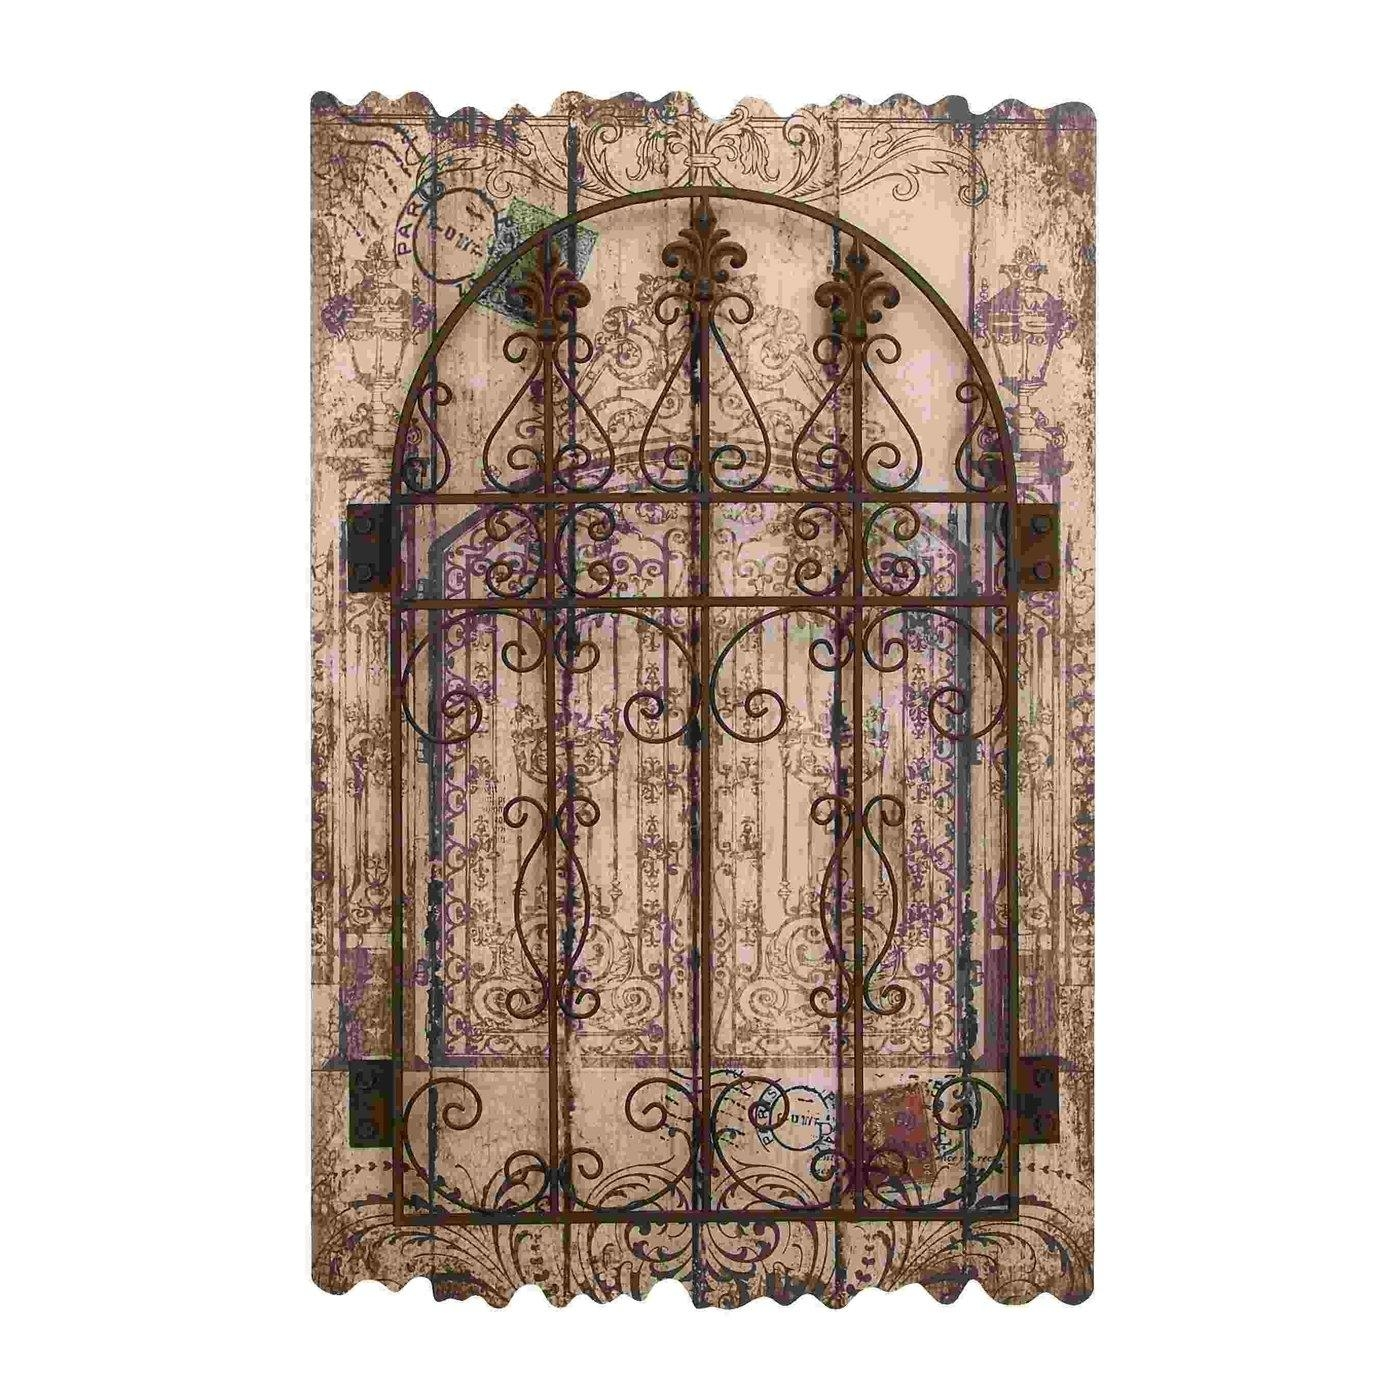 Wall Art Designs: Rustic Wood And Metal Wall Art Transitional With Regard To Wood And Iron Wall Art (View 8 of 20)